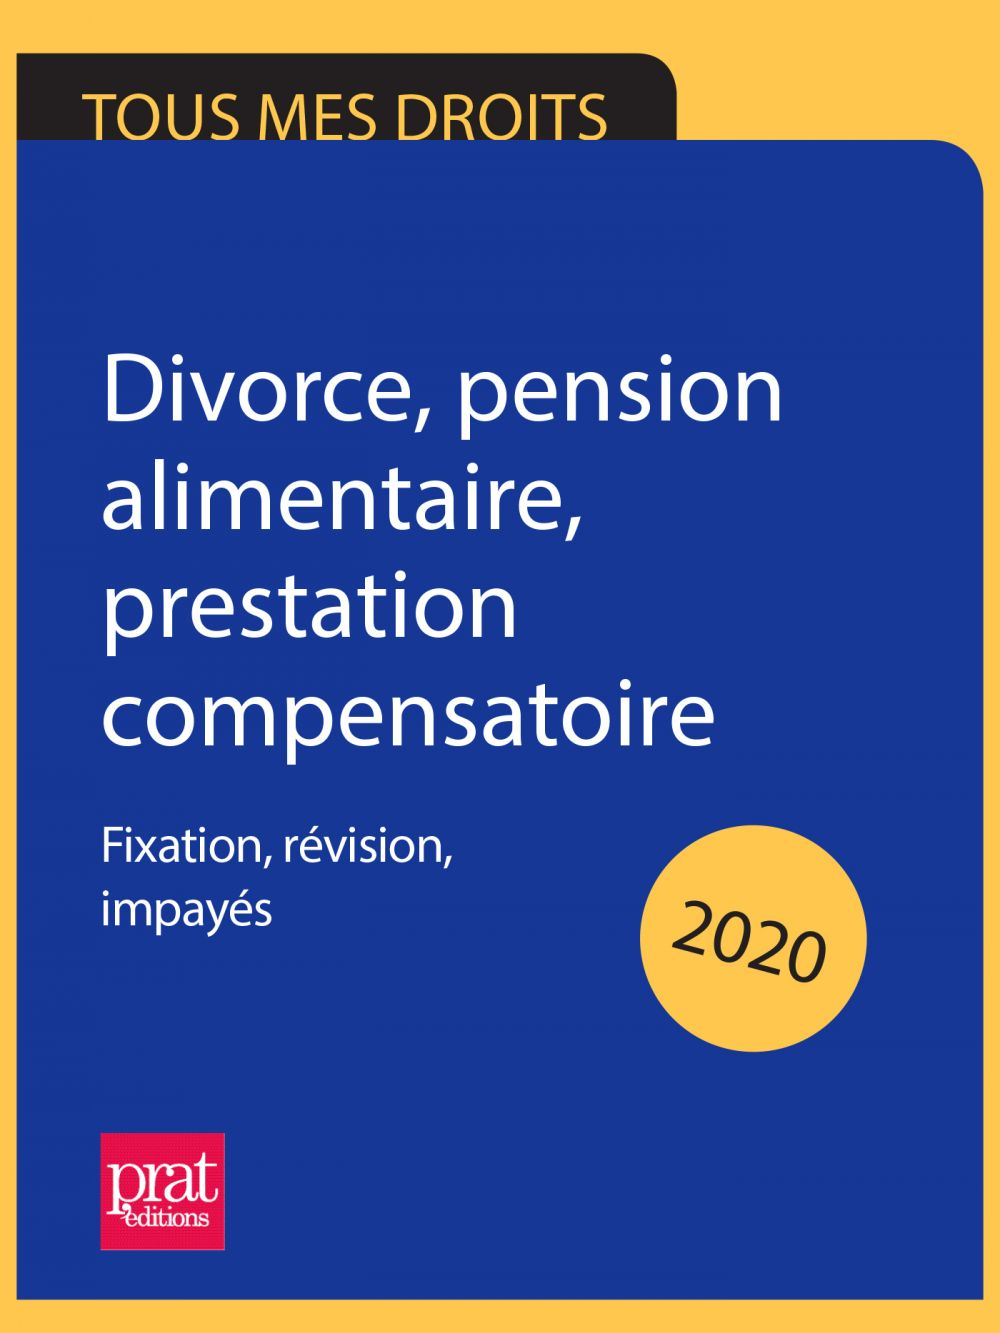 Divorce, pension alimentaire, prestation compensatoire 2020